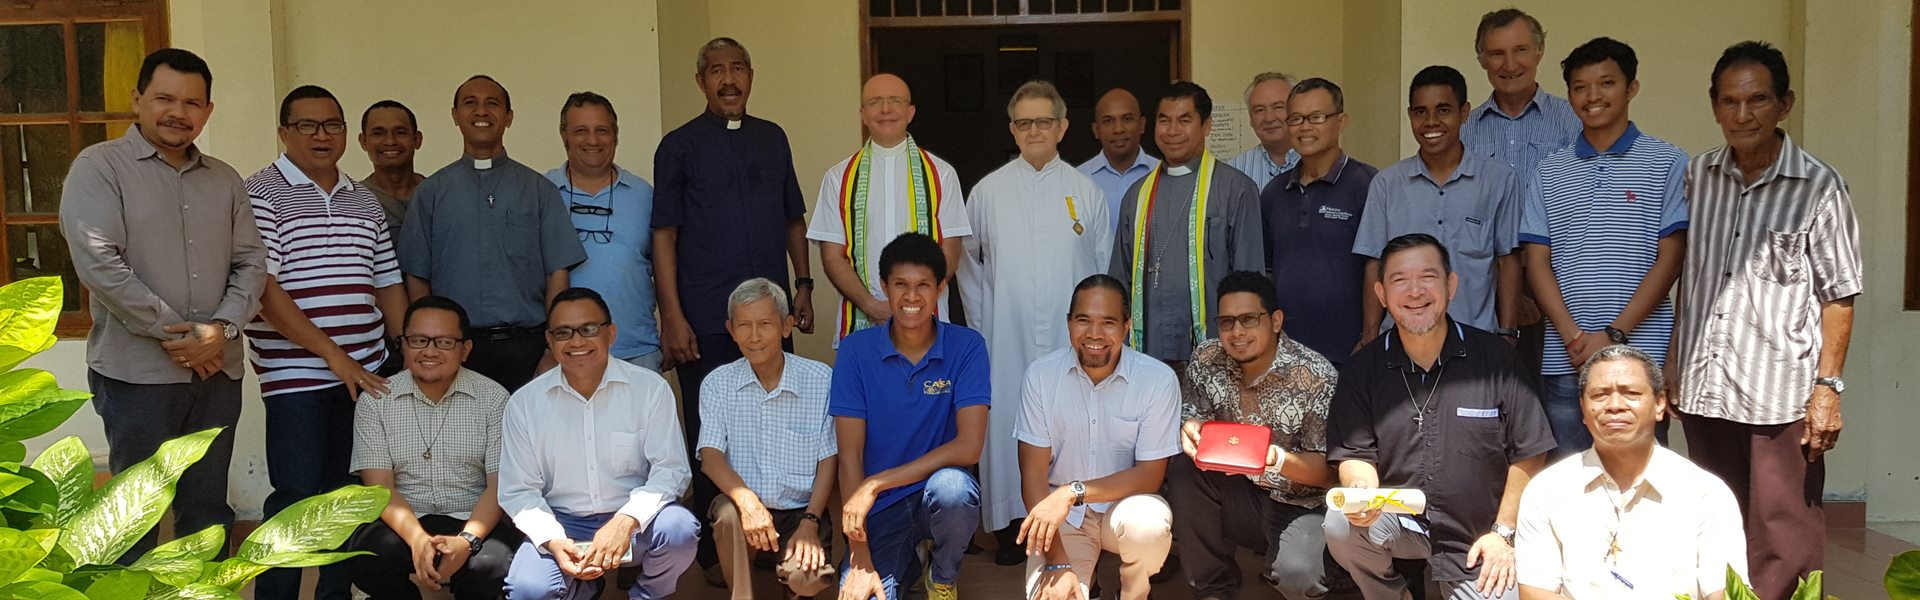 East Timor: a land of challenges for the Jesuits